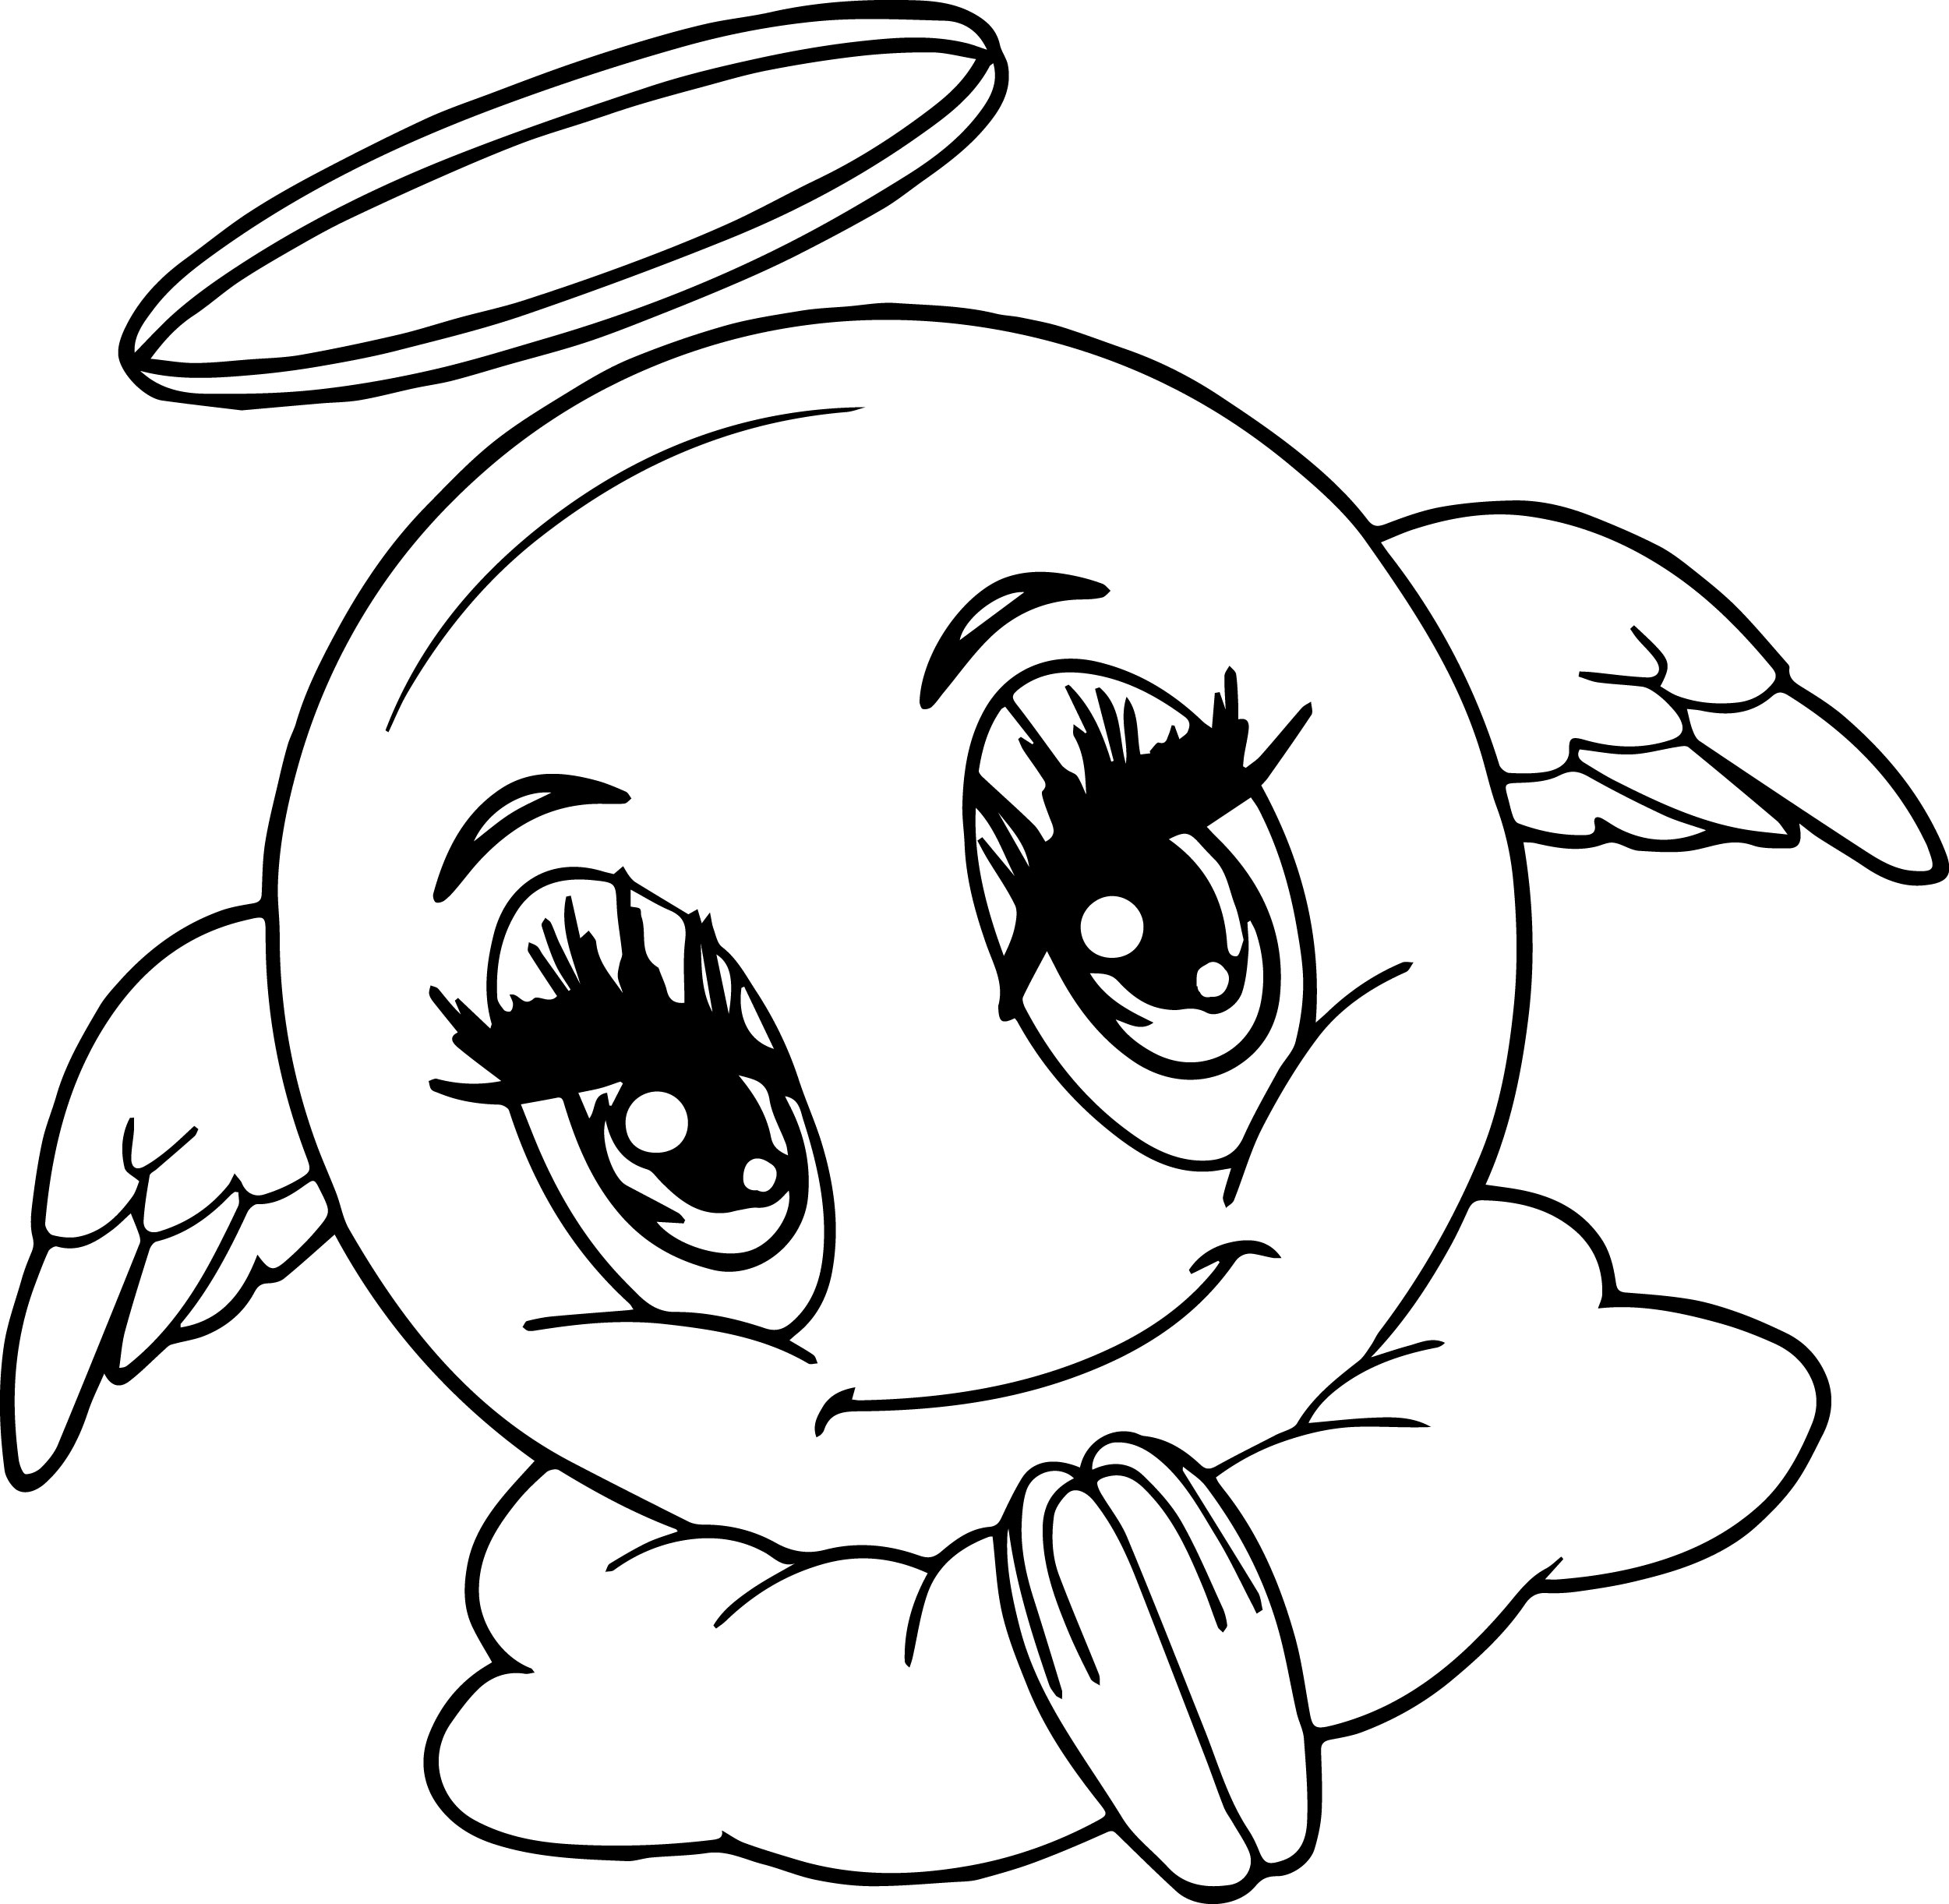 Emoji coloring pages best coloring pages for kids for Coloring page angel